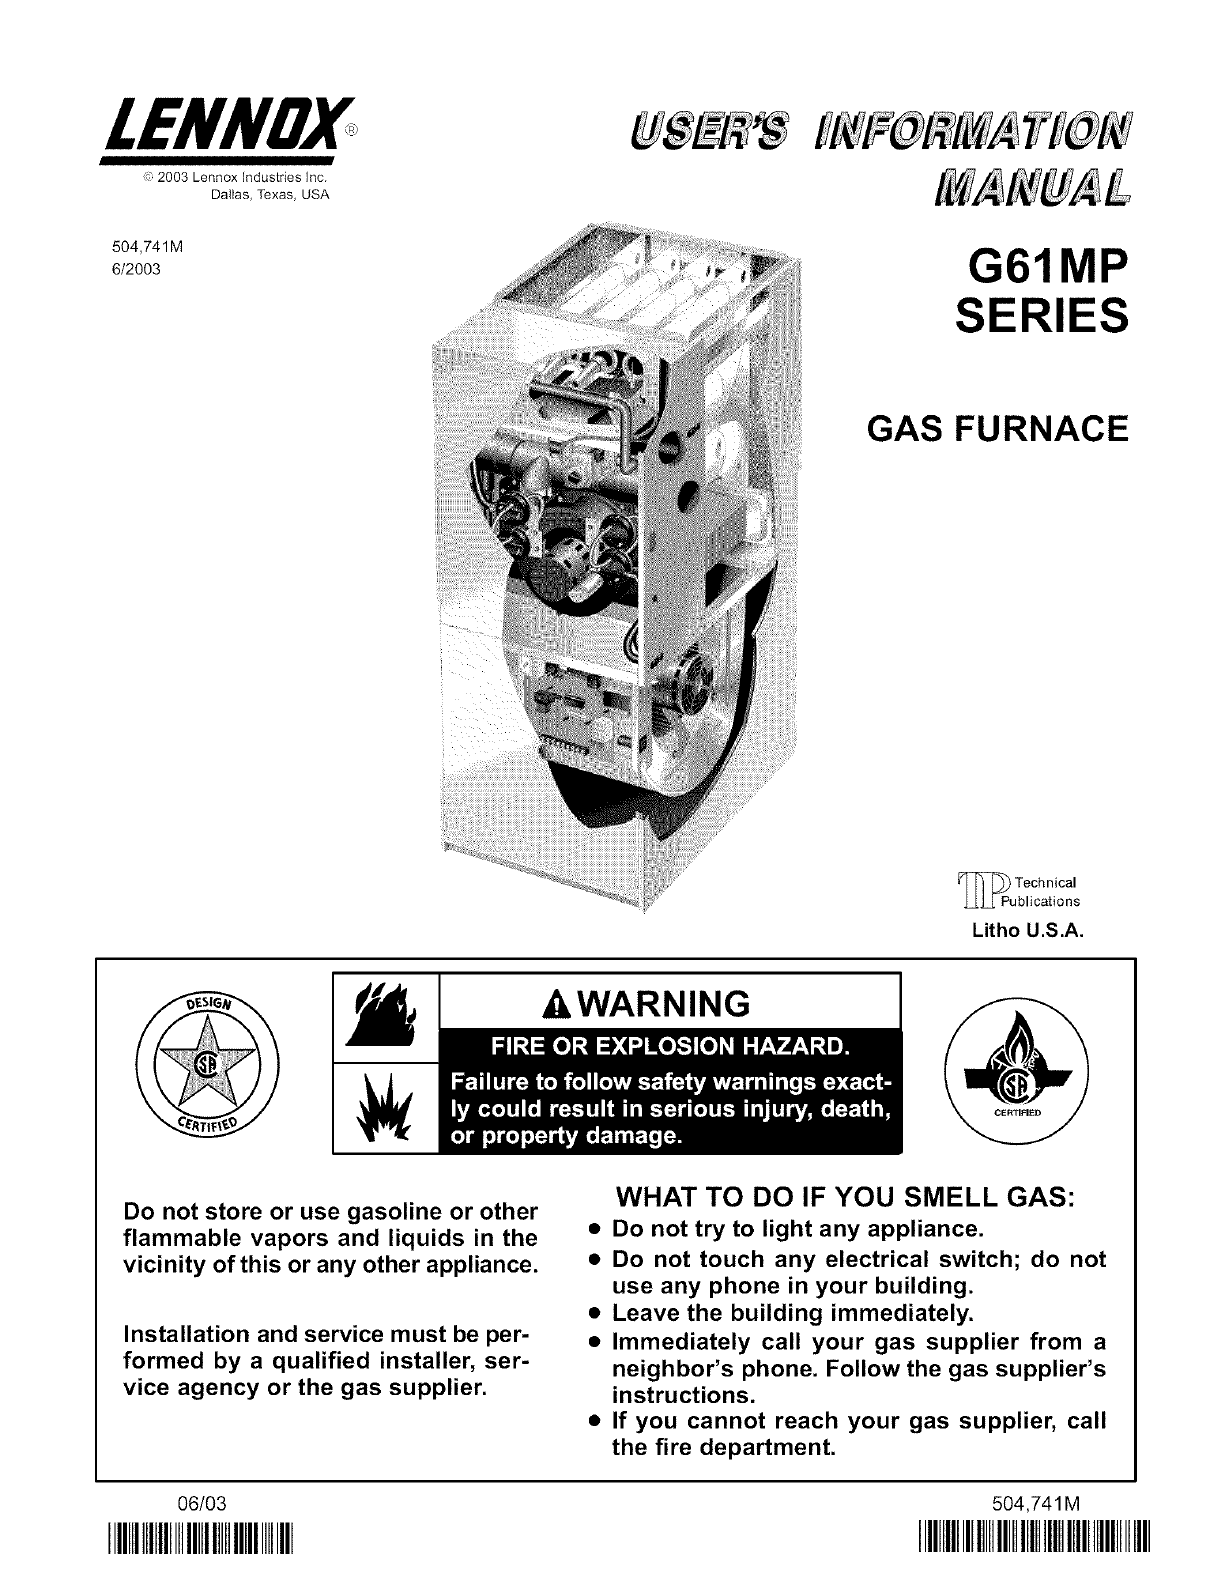 lennox furnace heater gas manual l0806228 rh usermanual wiki Lennox Furnace Parts lennox g61mpv furnace installation manual